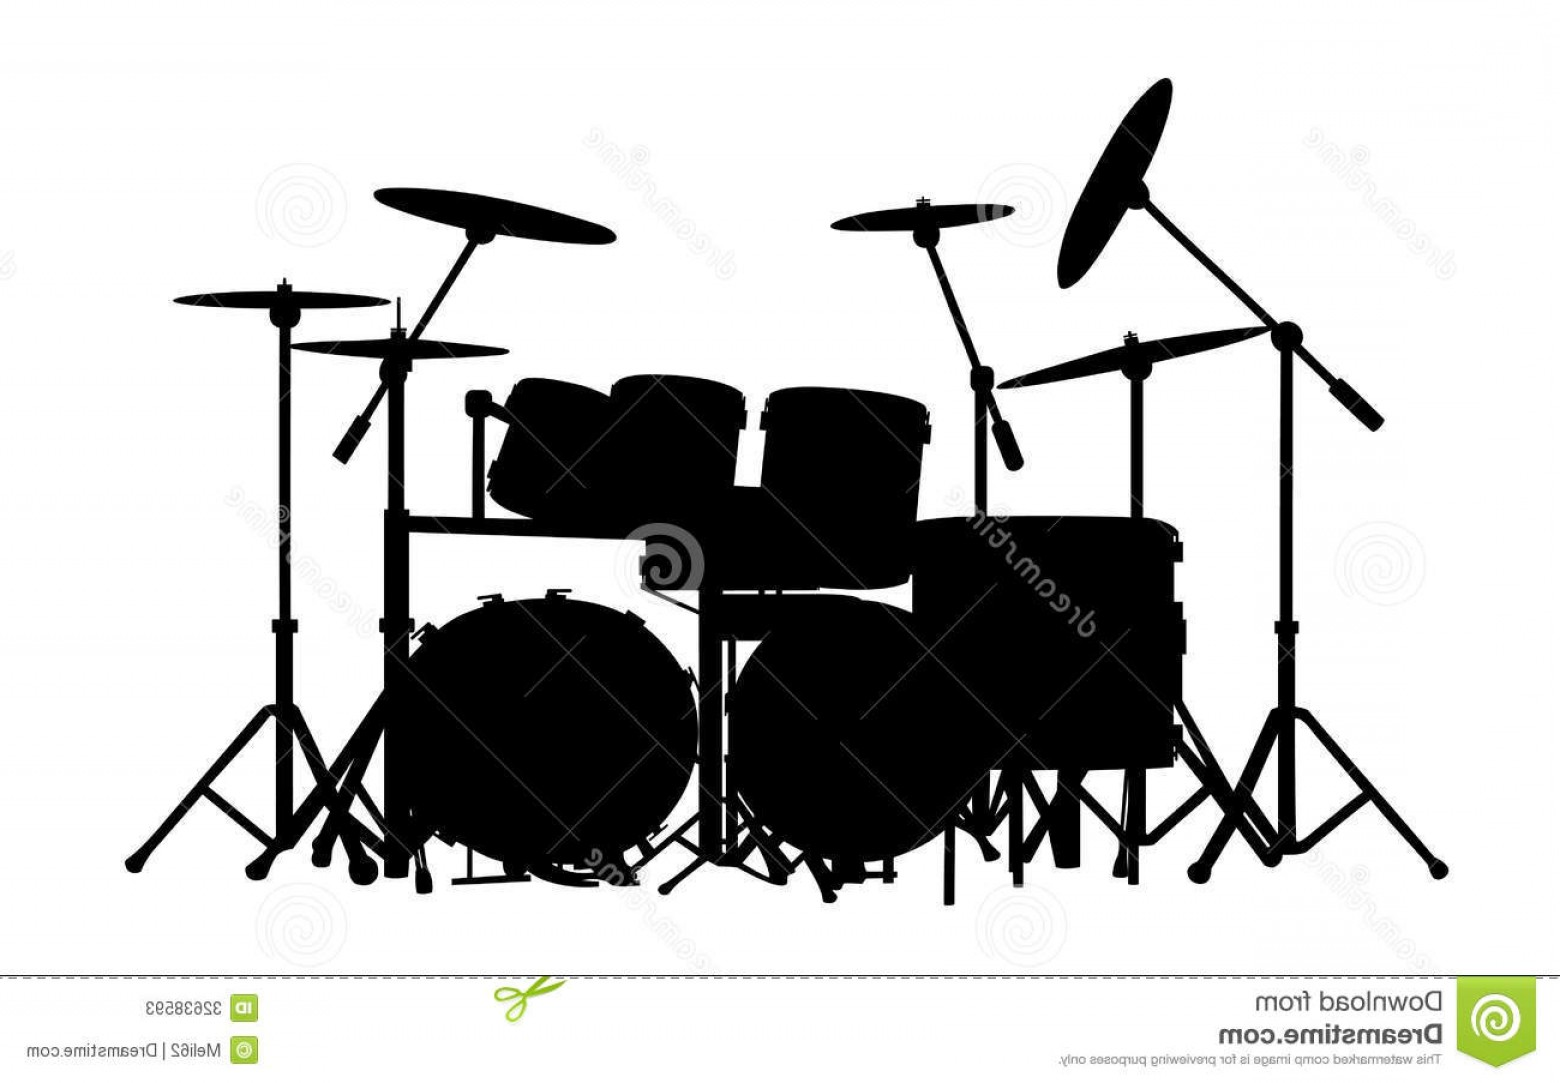 Drum Vector Art: Stock Photos Drums Vector Drum Kit Silhouette White Background Image